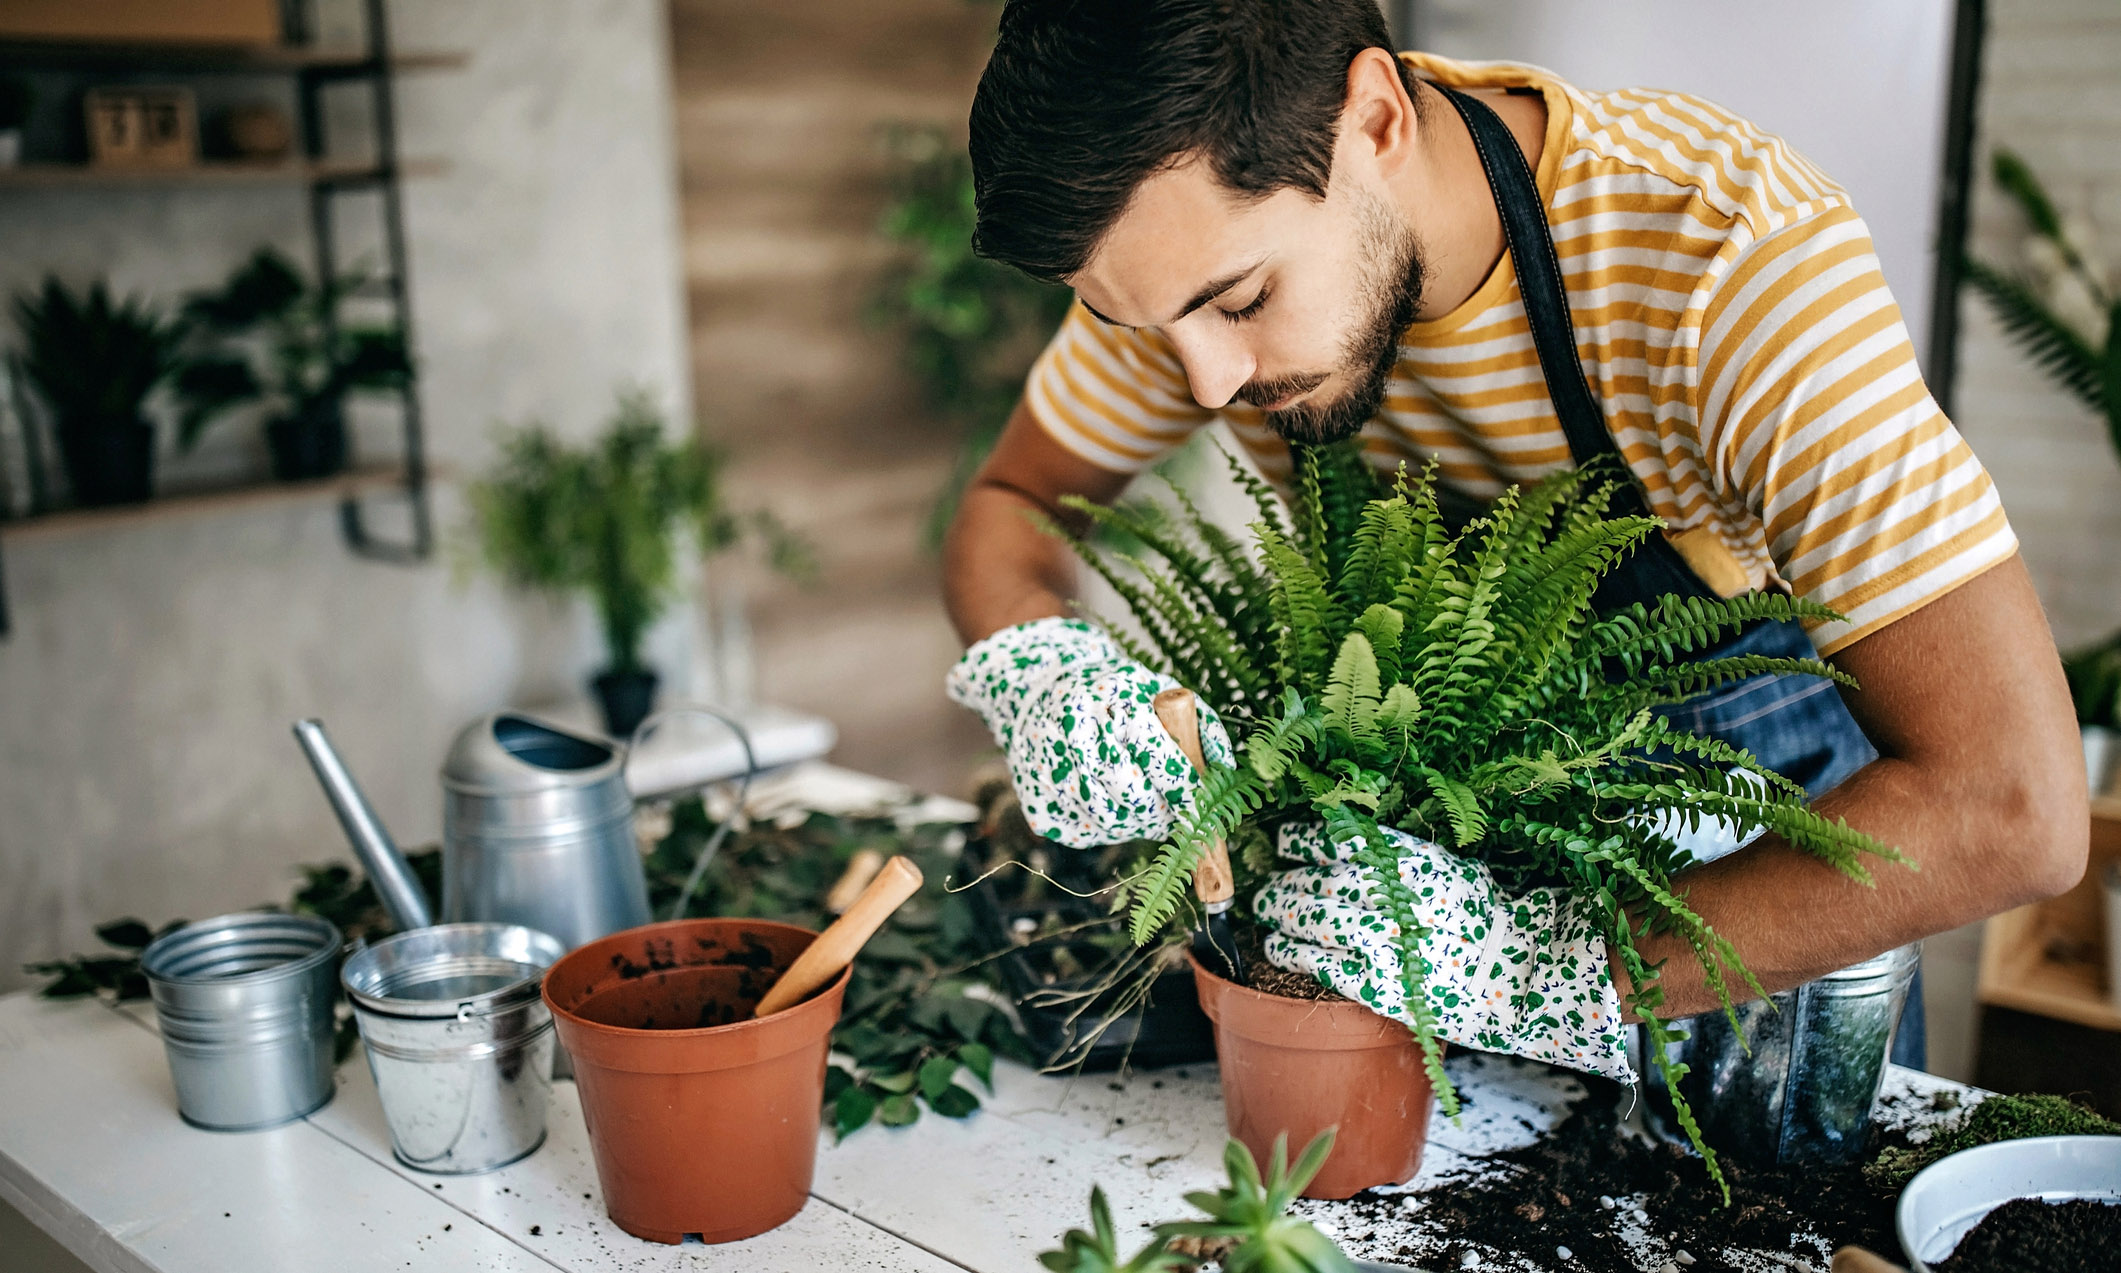 Man taking care of his plants at home